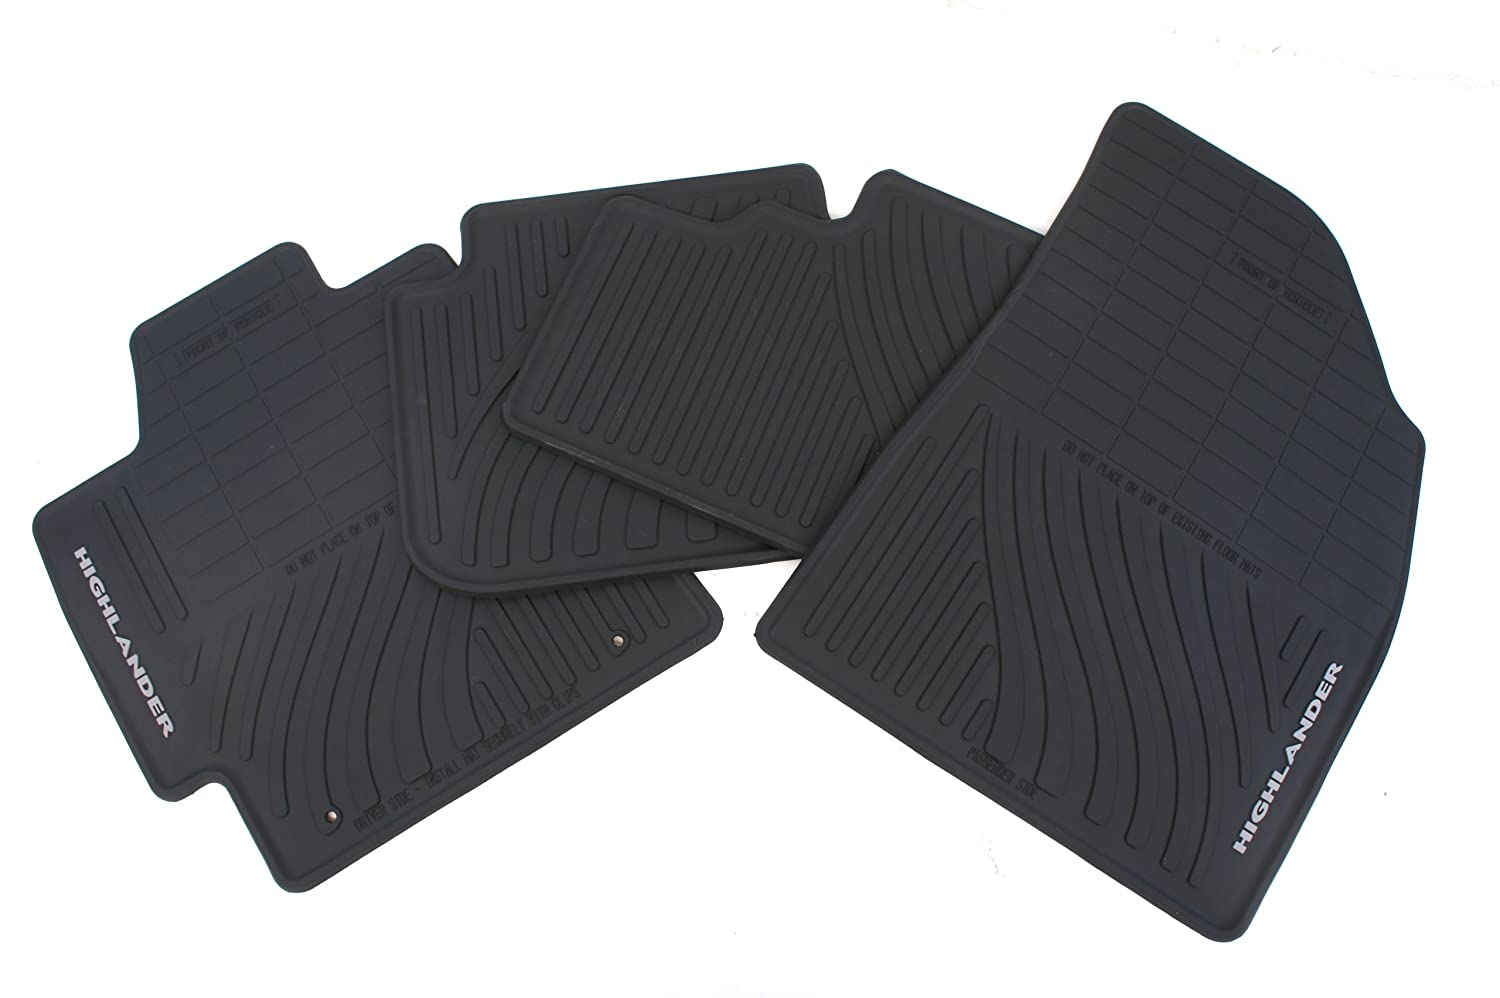 Set of 4 Genuine Toyota Accessories PT908-48G00-02 Front and Rear All-Weather Floor Mat - Black